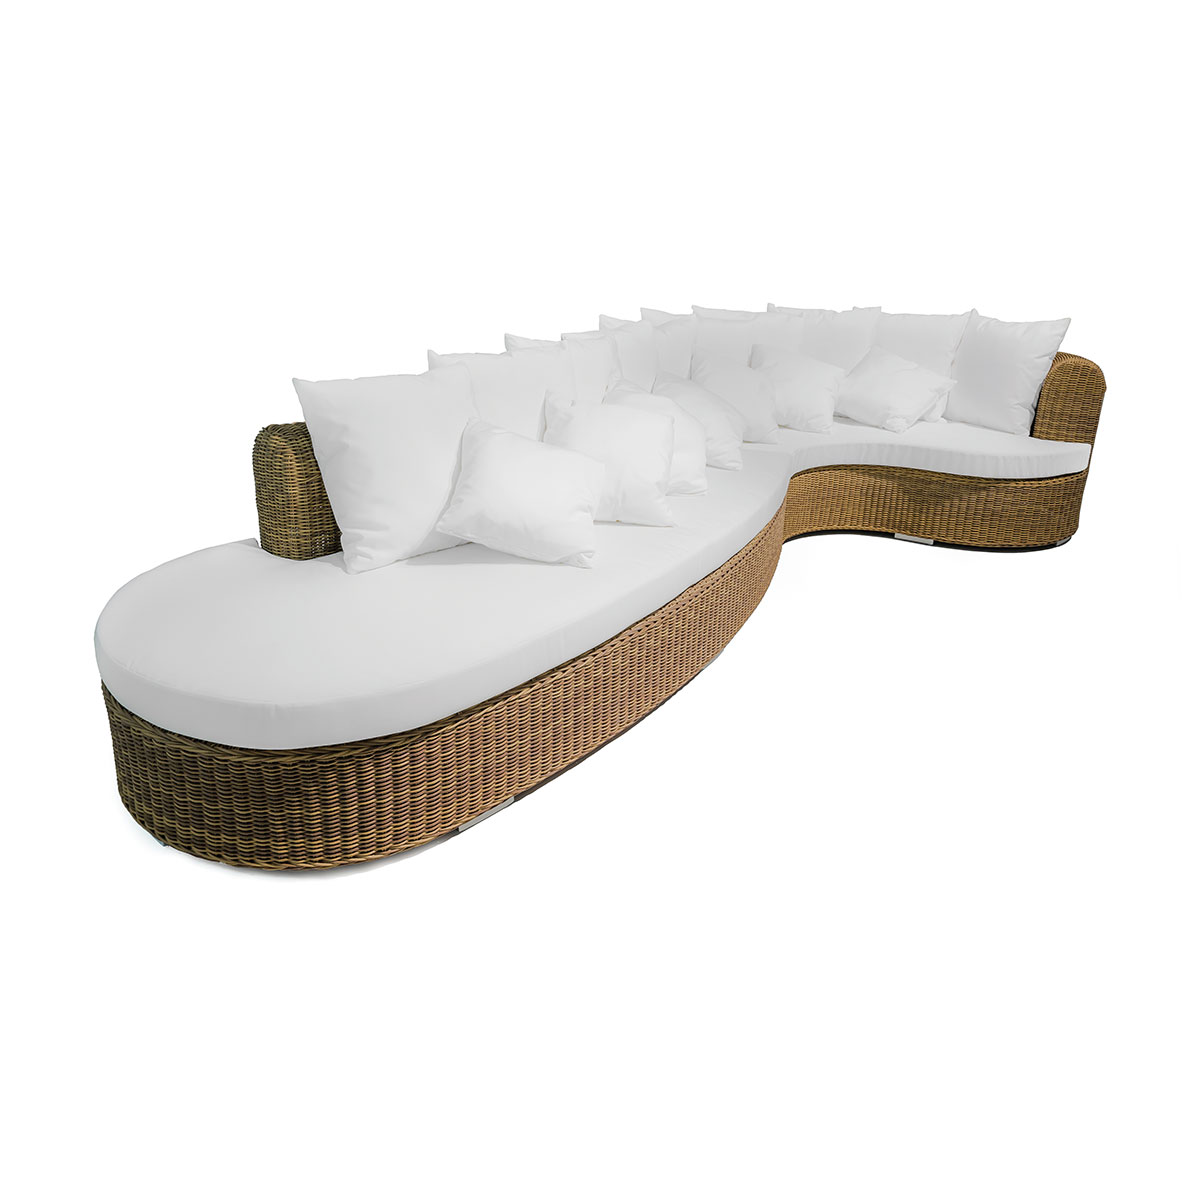 Circular sofa Cloe Braid